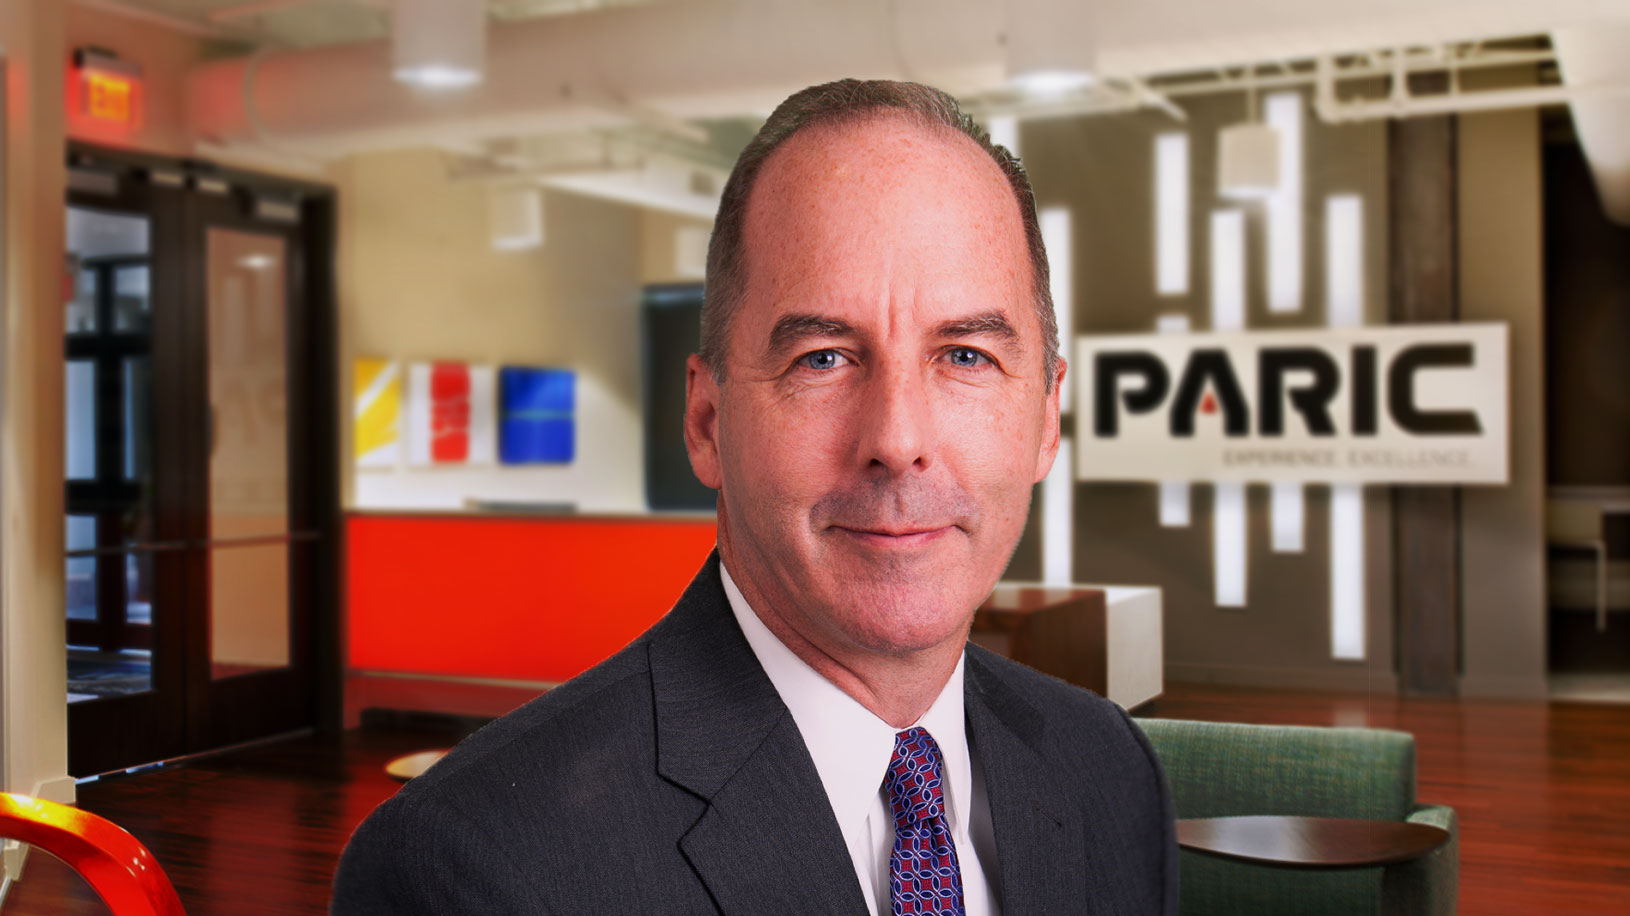 Public & Municipal is a strong point for Paric Construction, lead by Chris Malone.